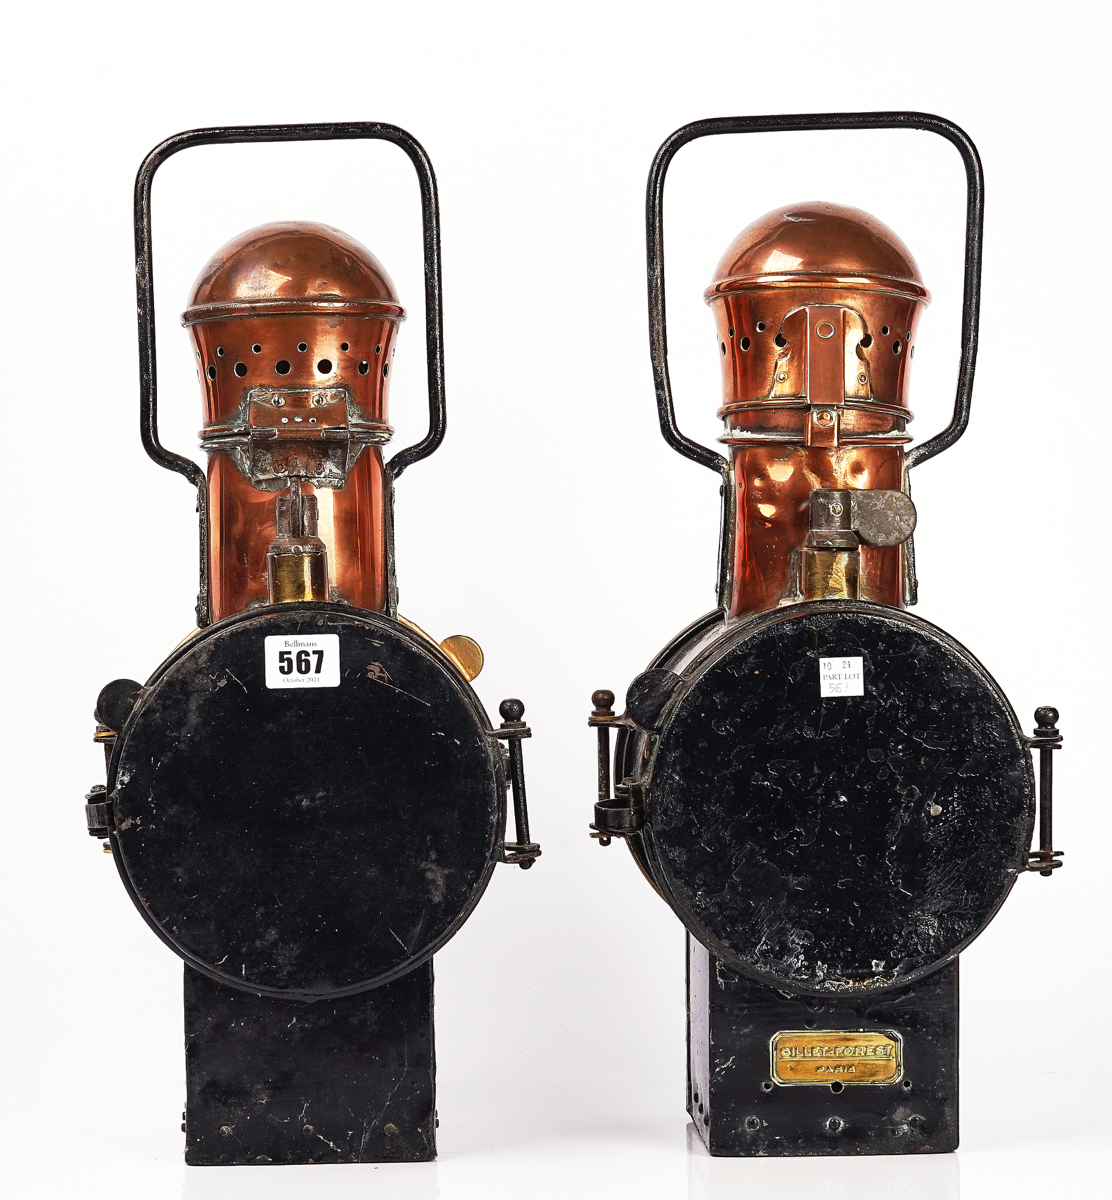 TWO FRENCH S.N.C.F RAILWAY LANTERNS - Image 2 of 5